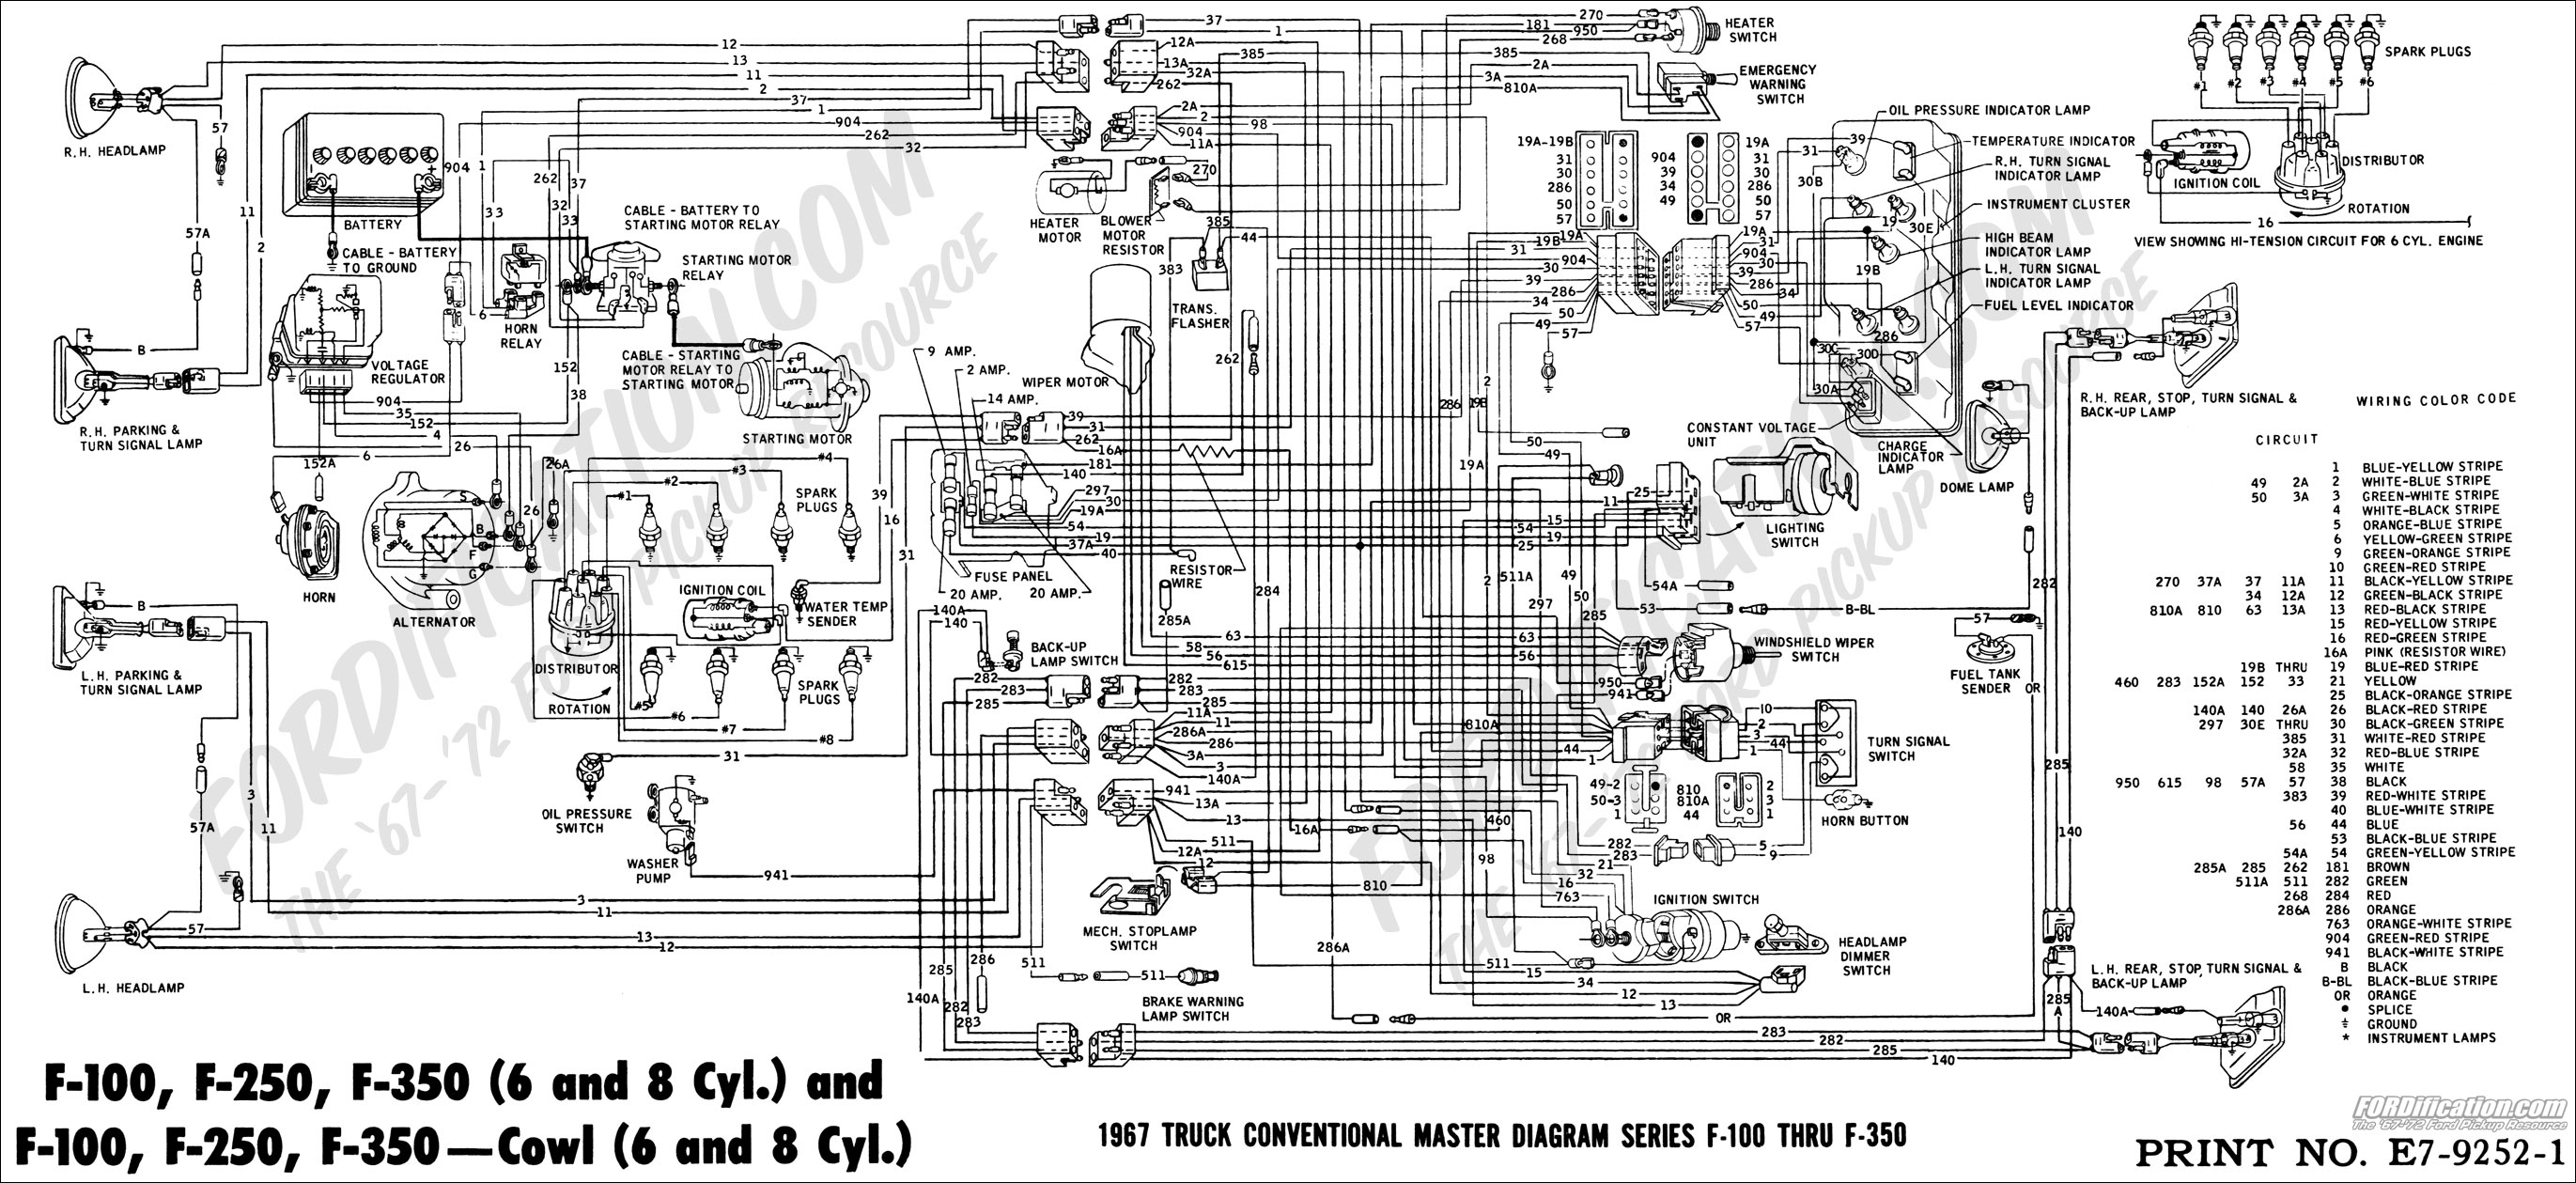 Ford F150 Wiring Harness Diagram - Wiring Diagrams Hubs - Ford F150 Wiring Harness Diagram